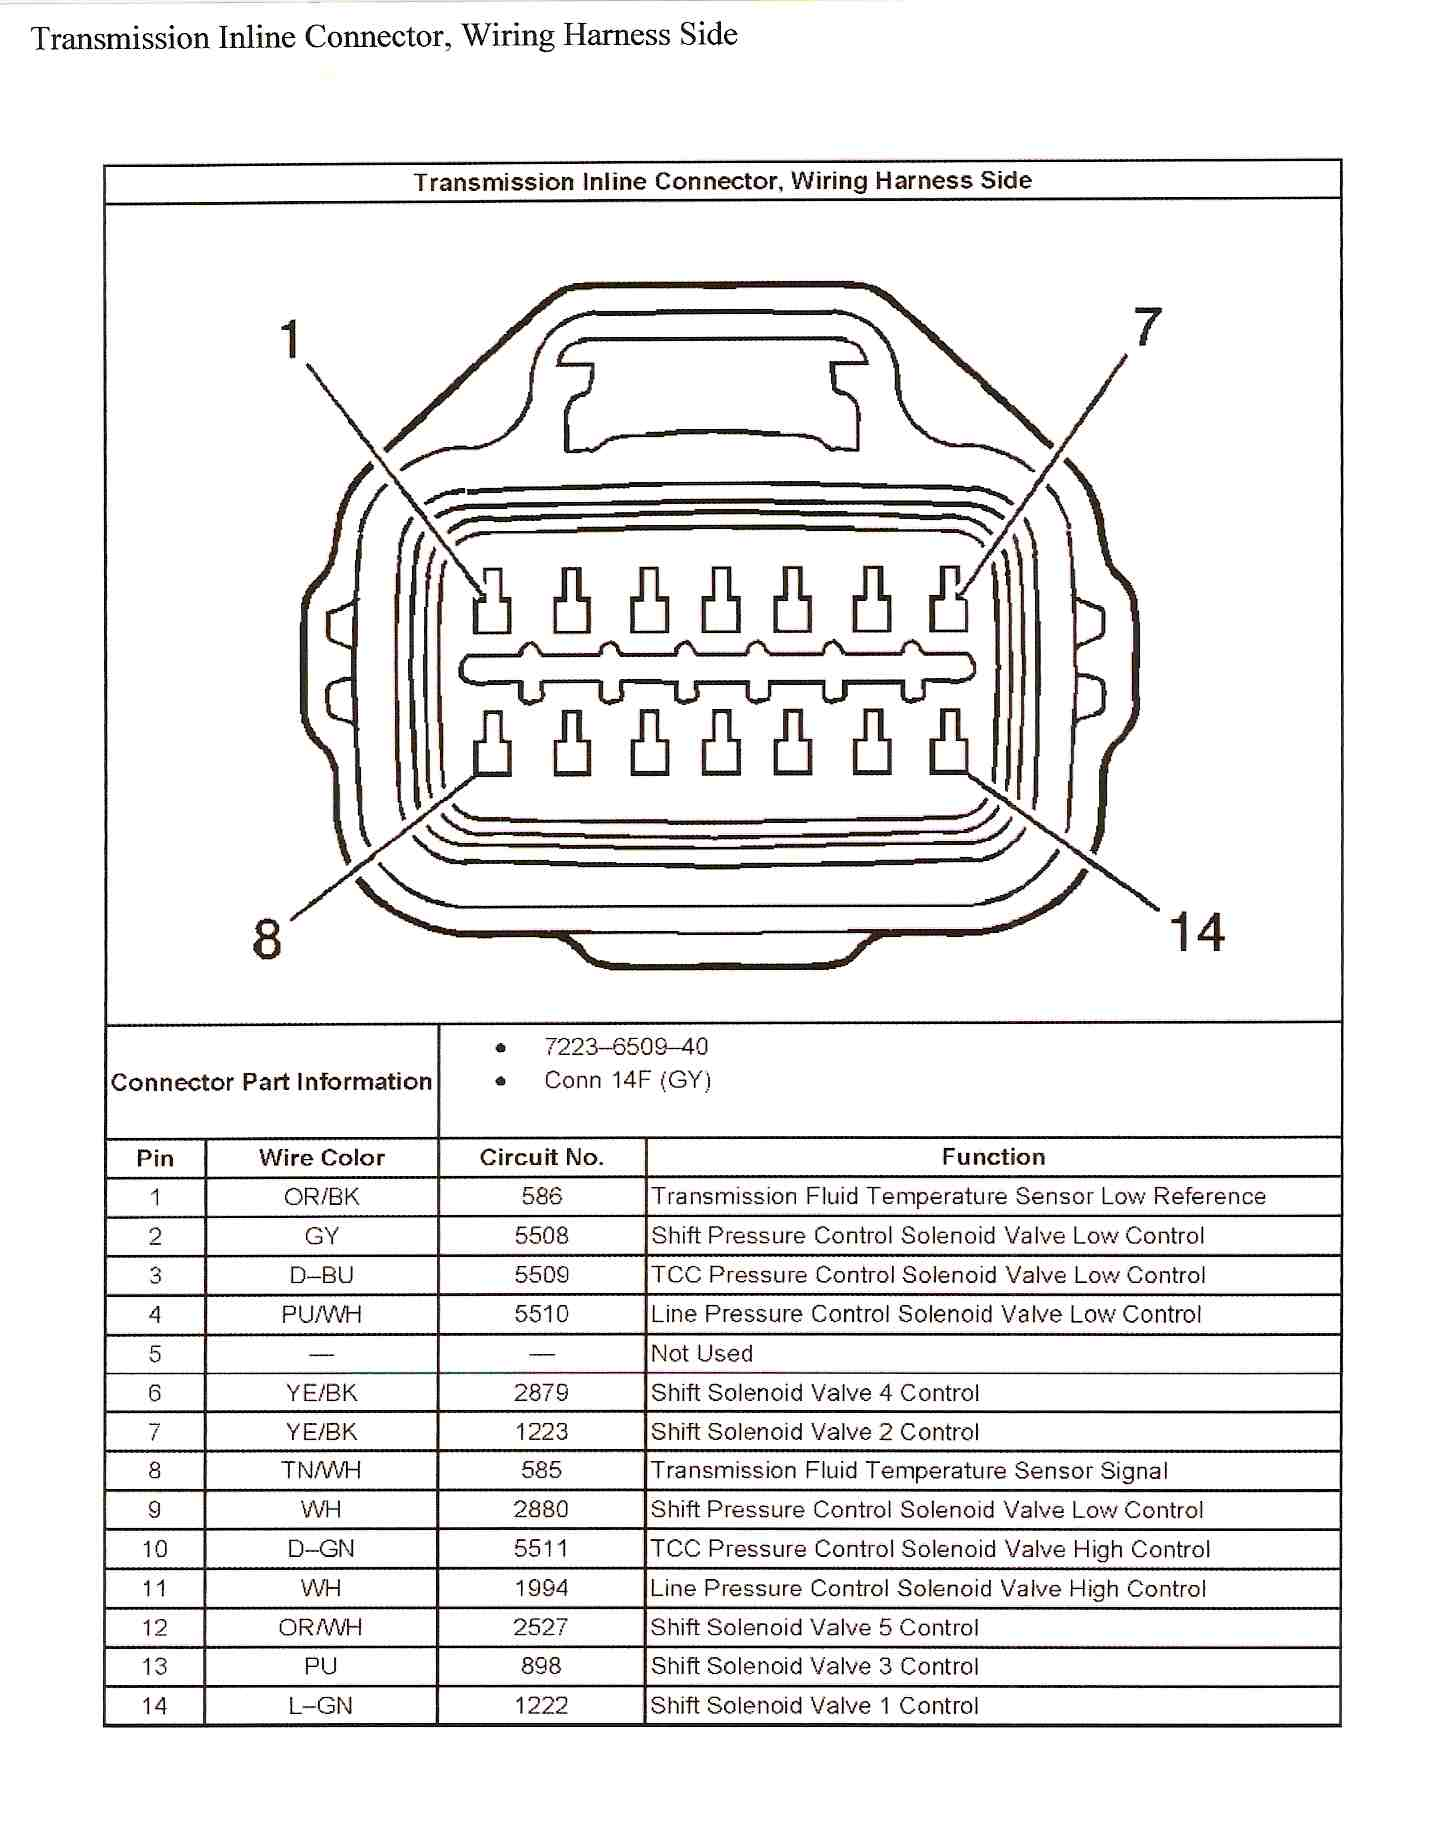 2007 10 24_093344_scan0089 transmission wiring diagram chevy equinox ls 2005 2005 chevy equinox wiring harness at honlapkeszites.co